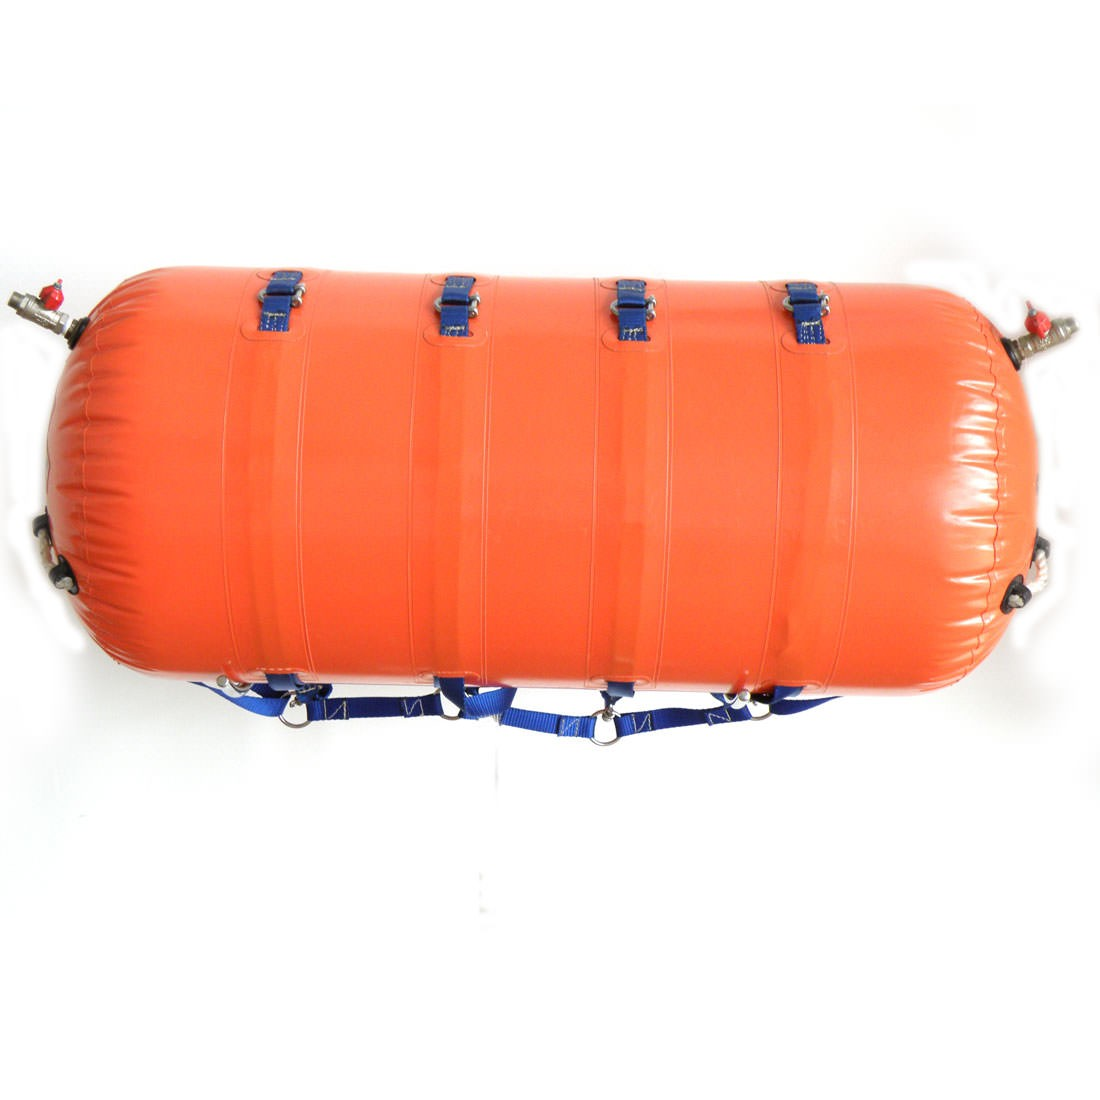 Seaflex 10 Ton Inflatable Buoyancy Unit